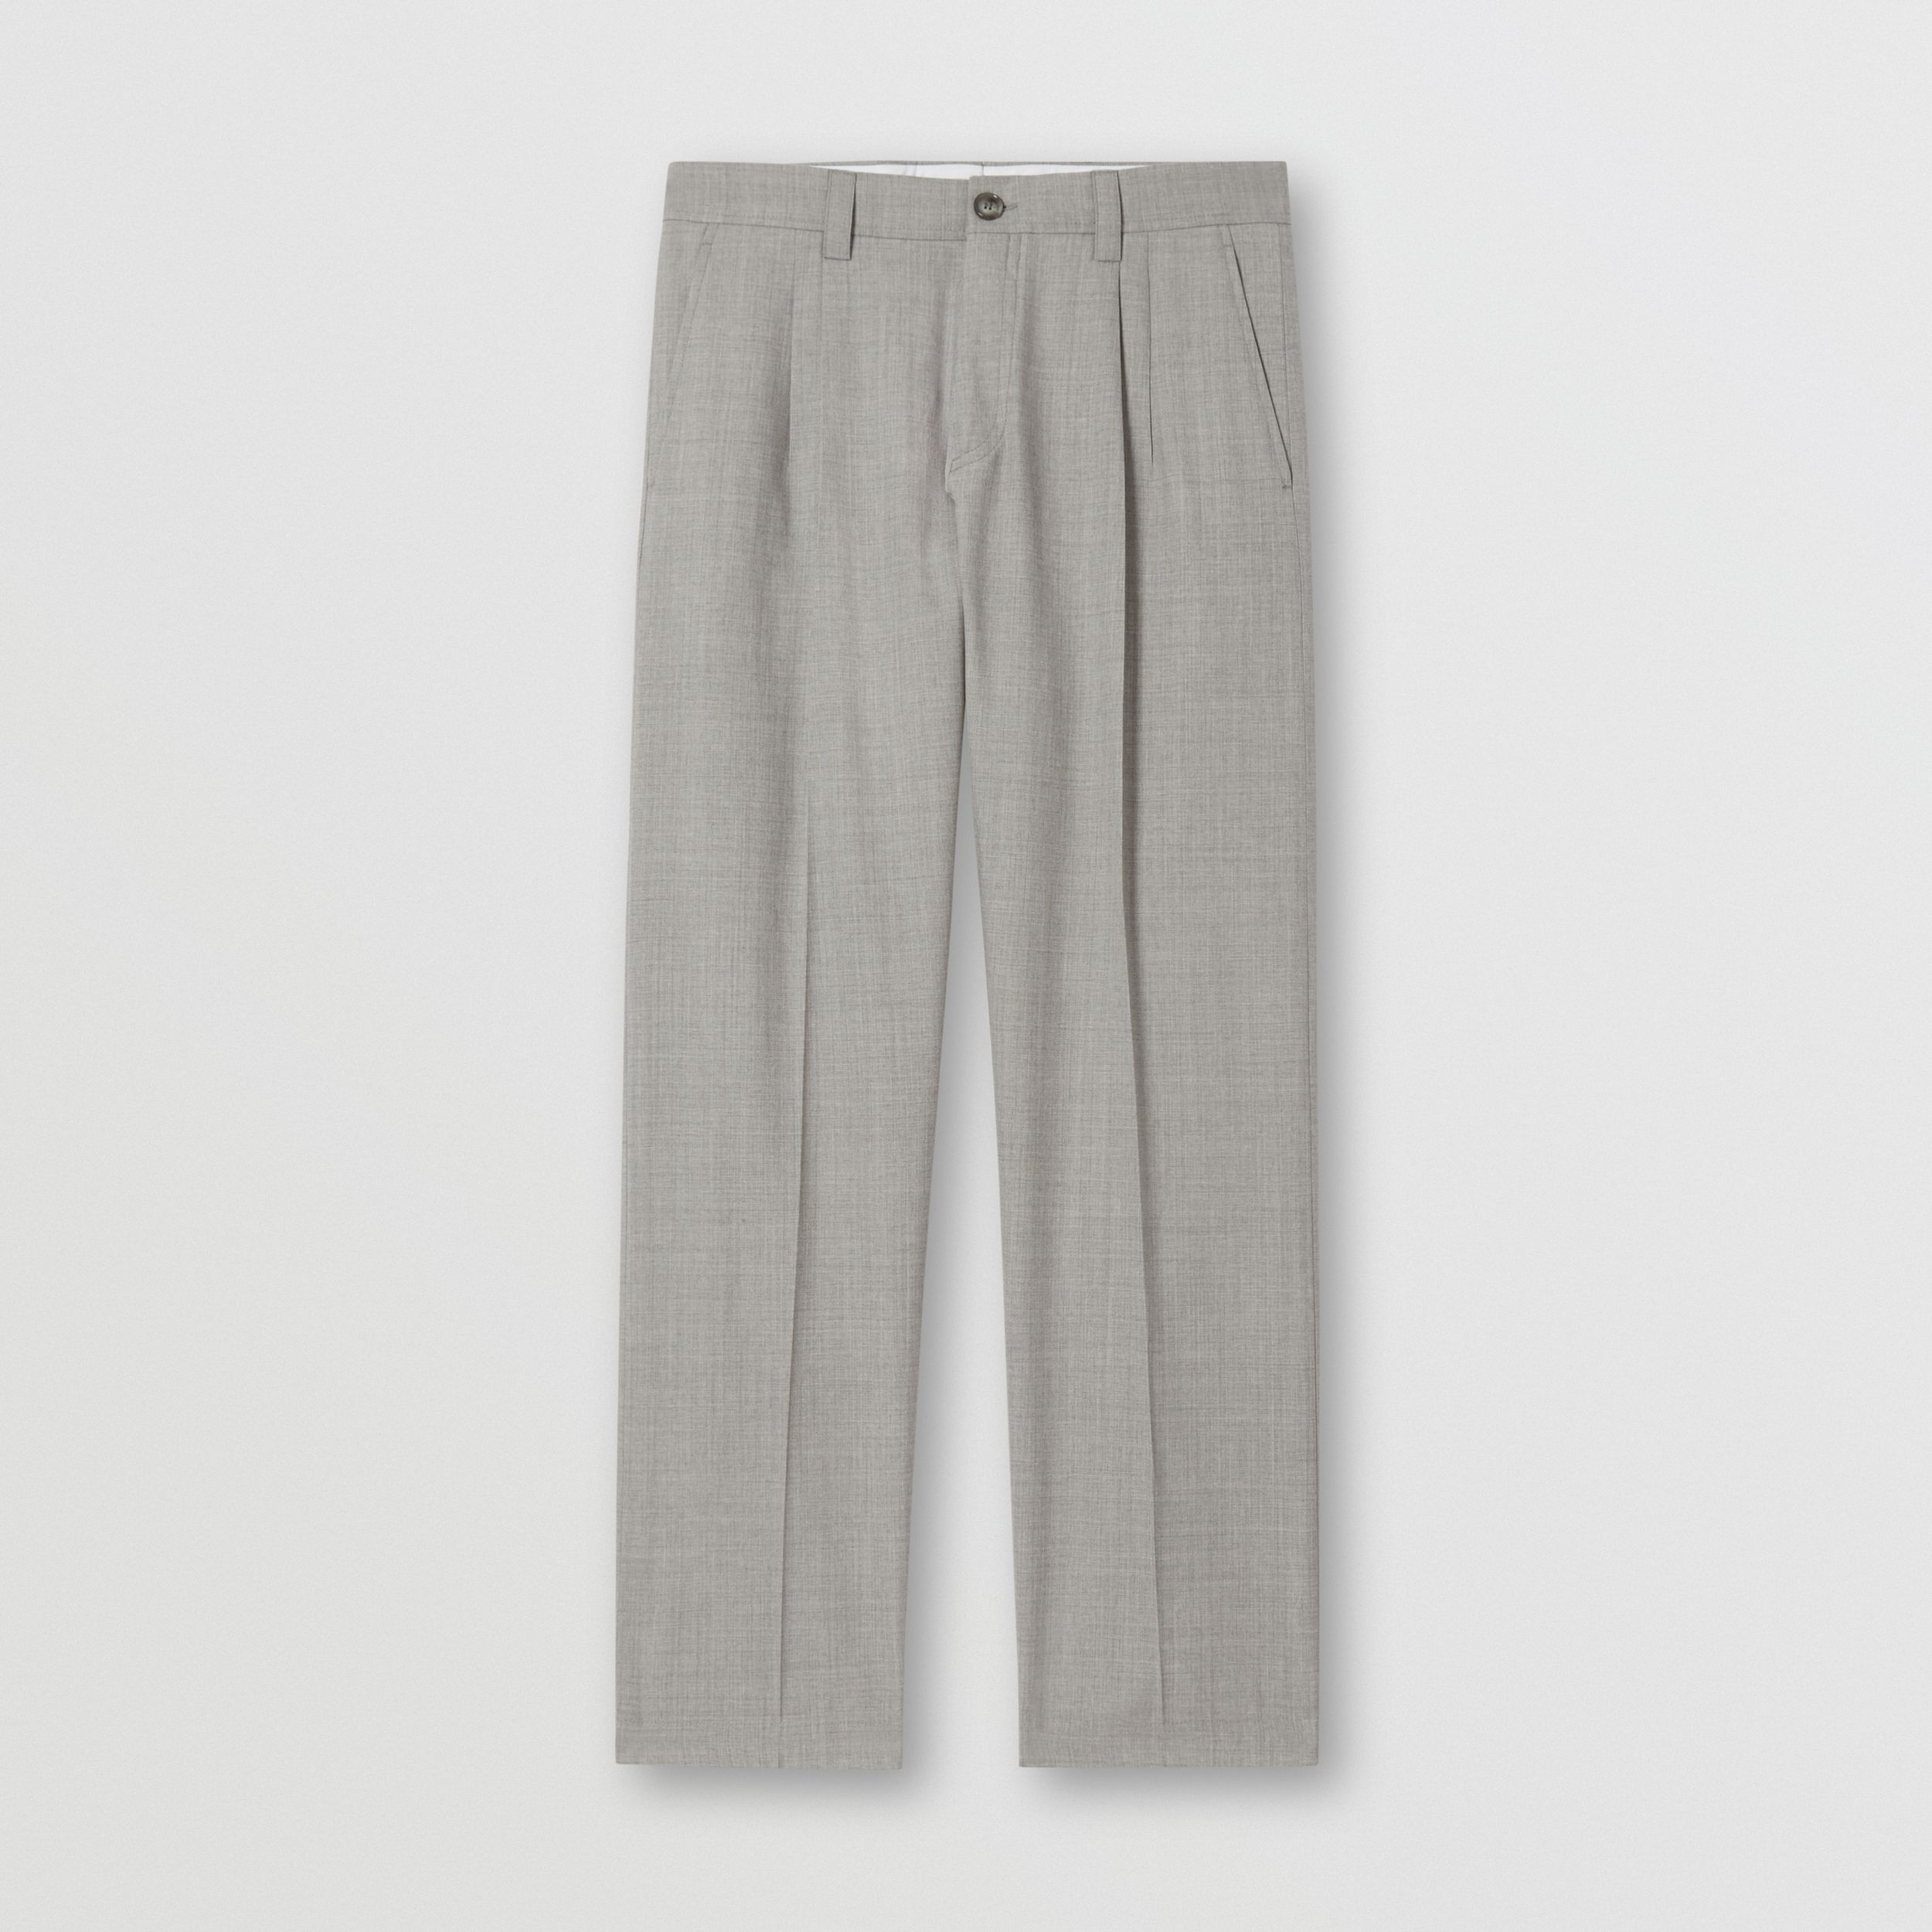 Logo Wool Jacquard Tailored Trousers in Light Pebble Grey - Men | Burberry - 4